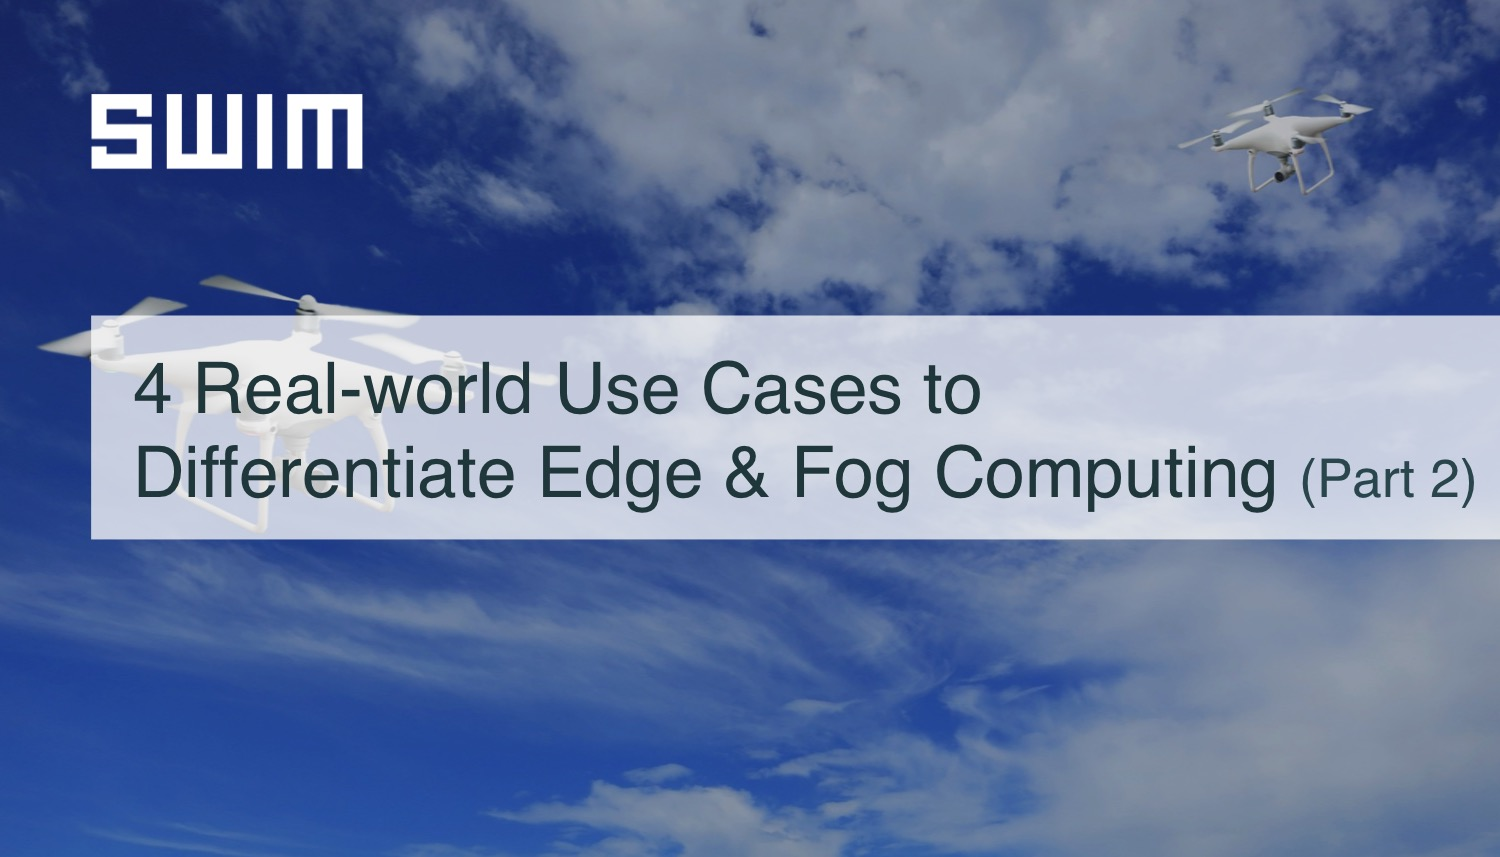 4 Real-world Use Cases to Differentiate Edge Computing & Fog Computing (Part 2) | Swim Inc.